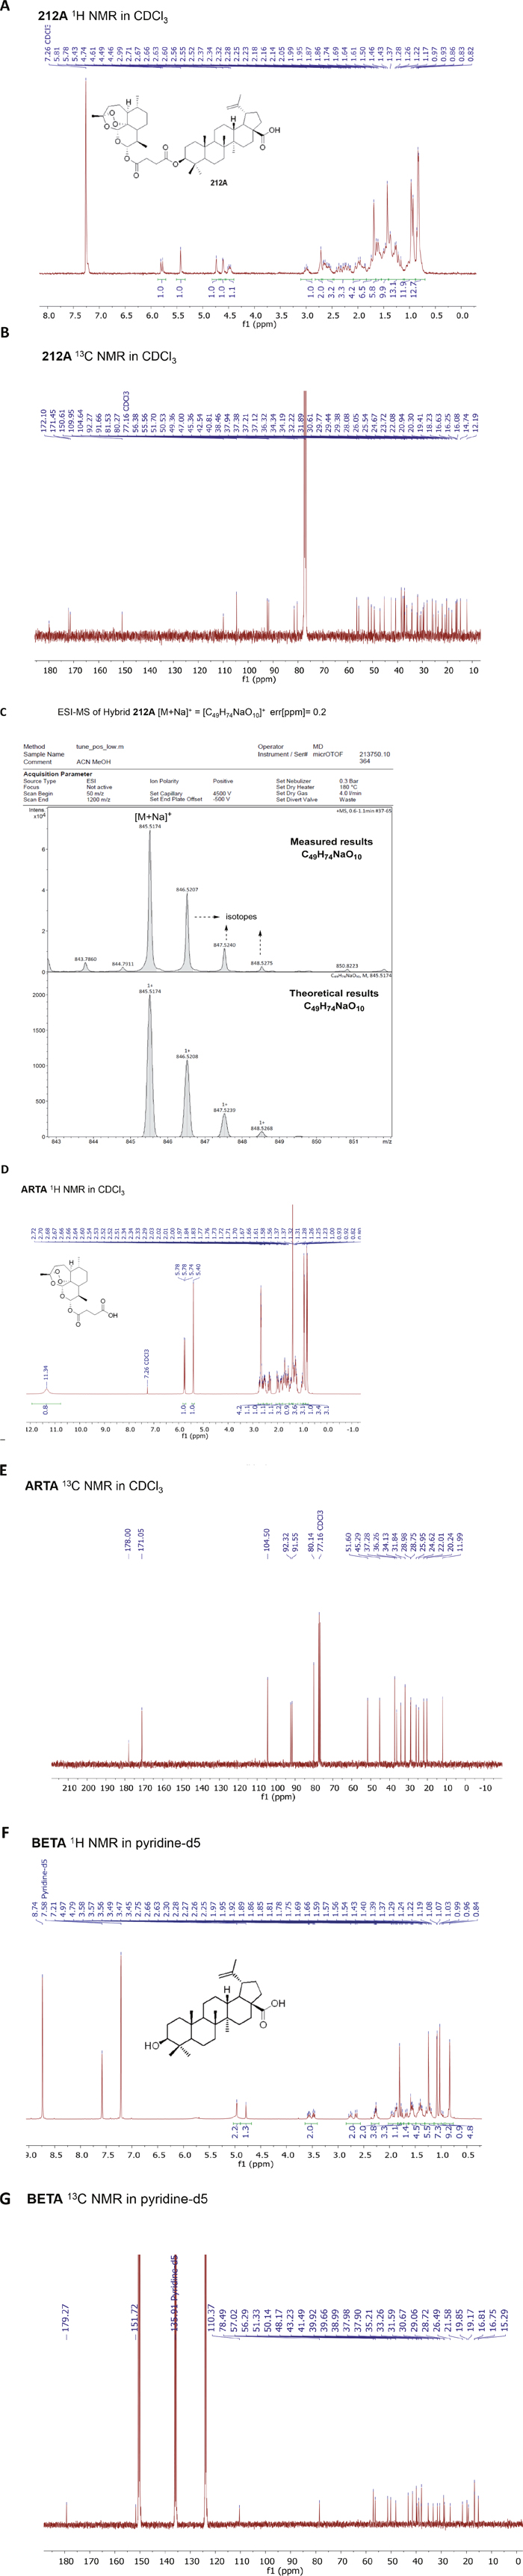 NMR and Mass spectra of hybrid compound 212A, BETA and ARTA.